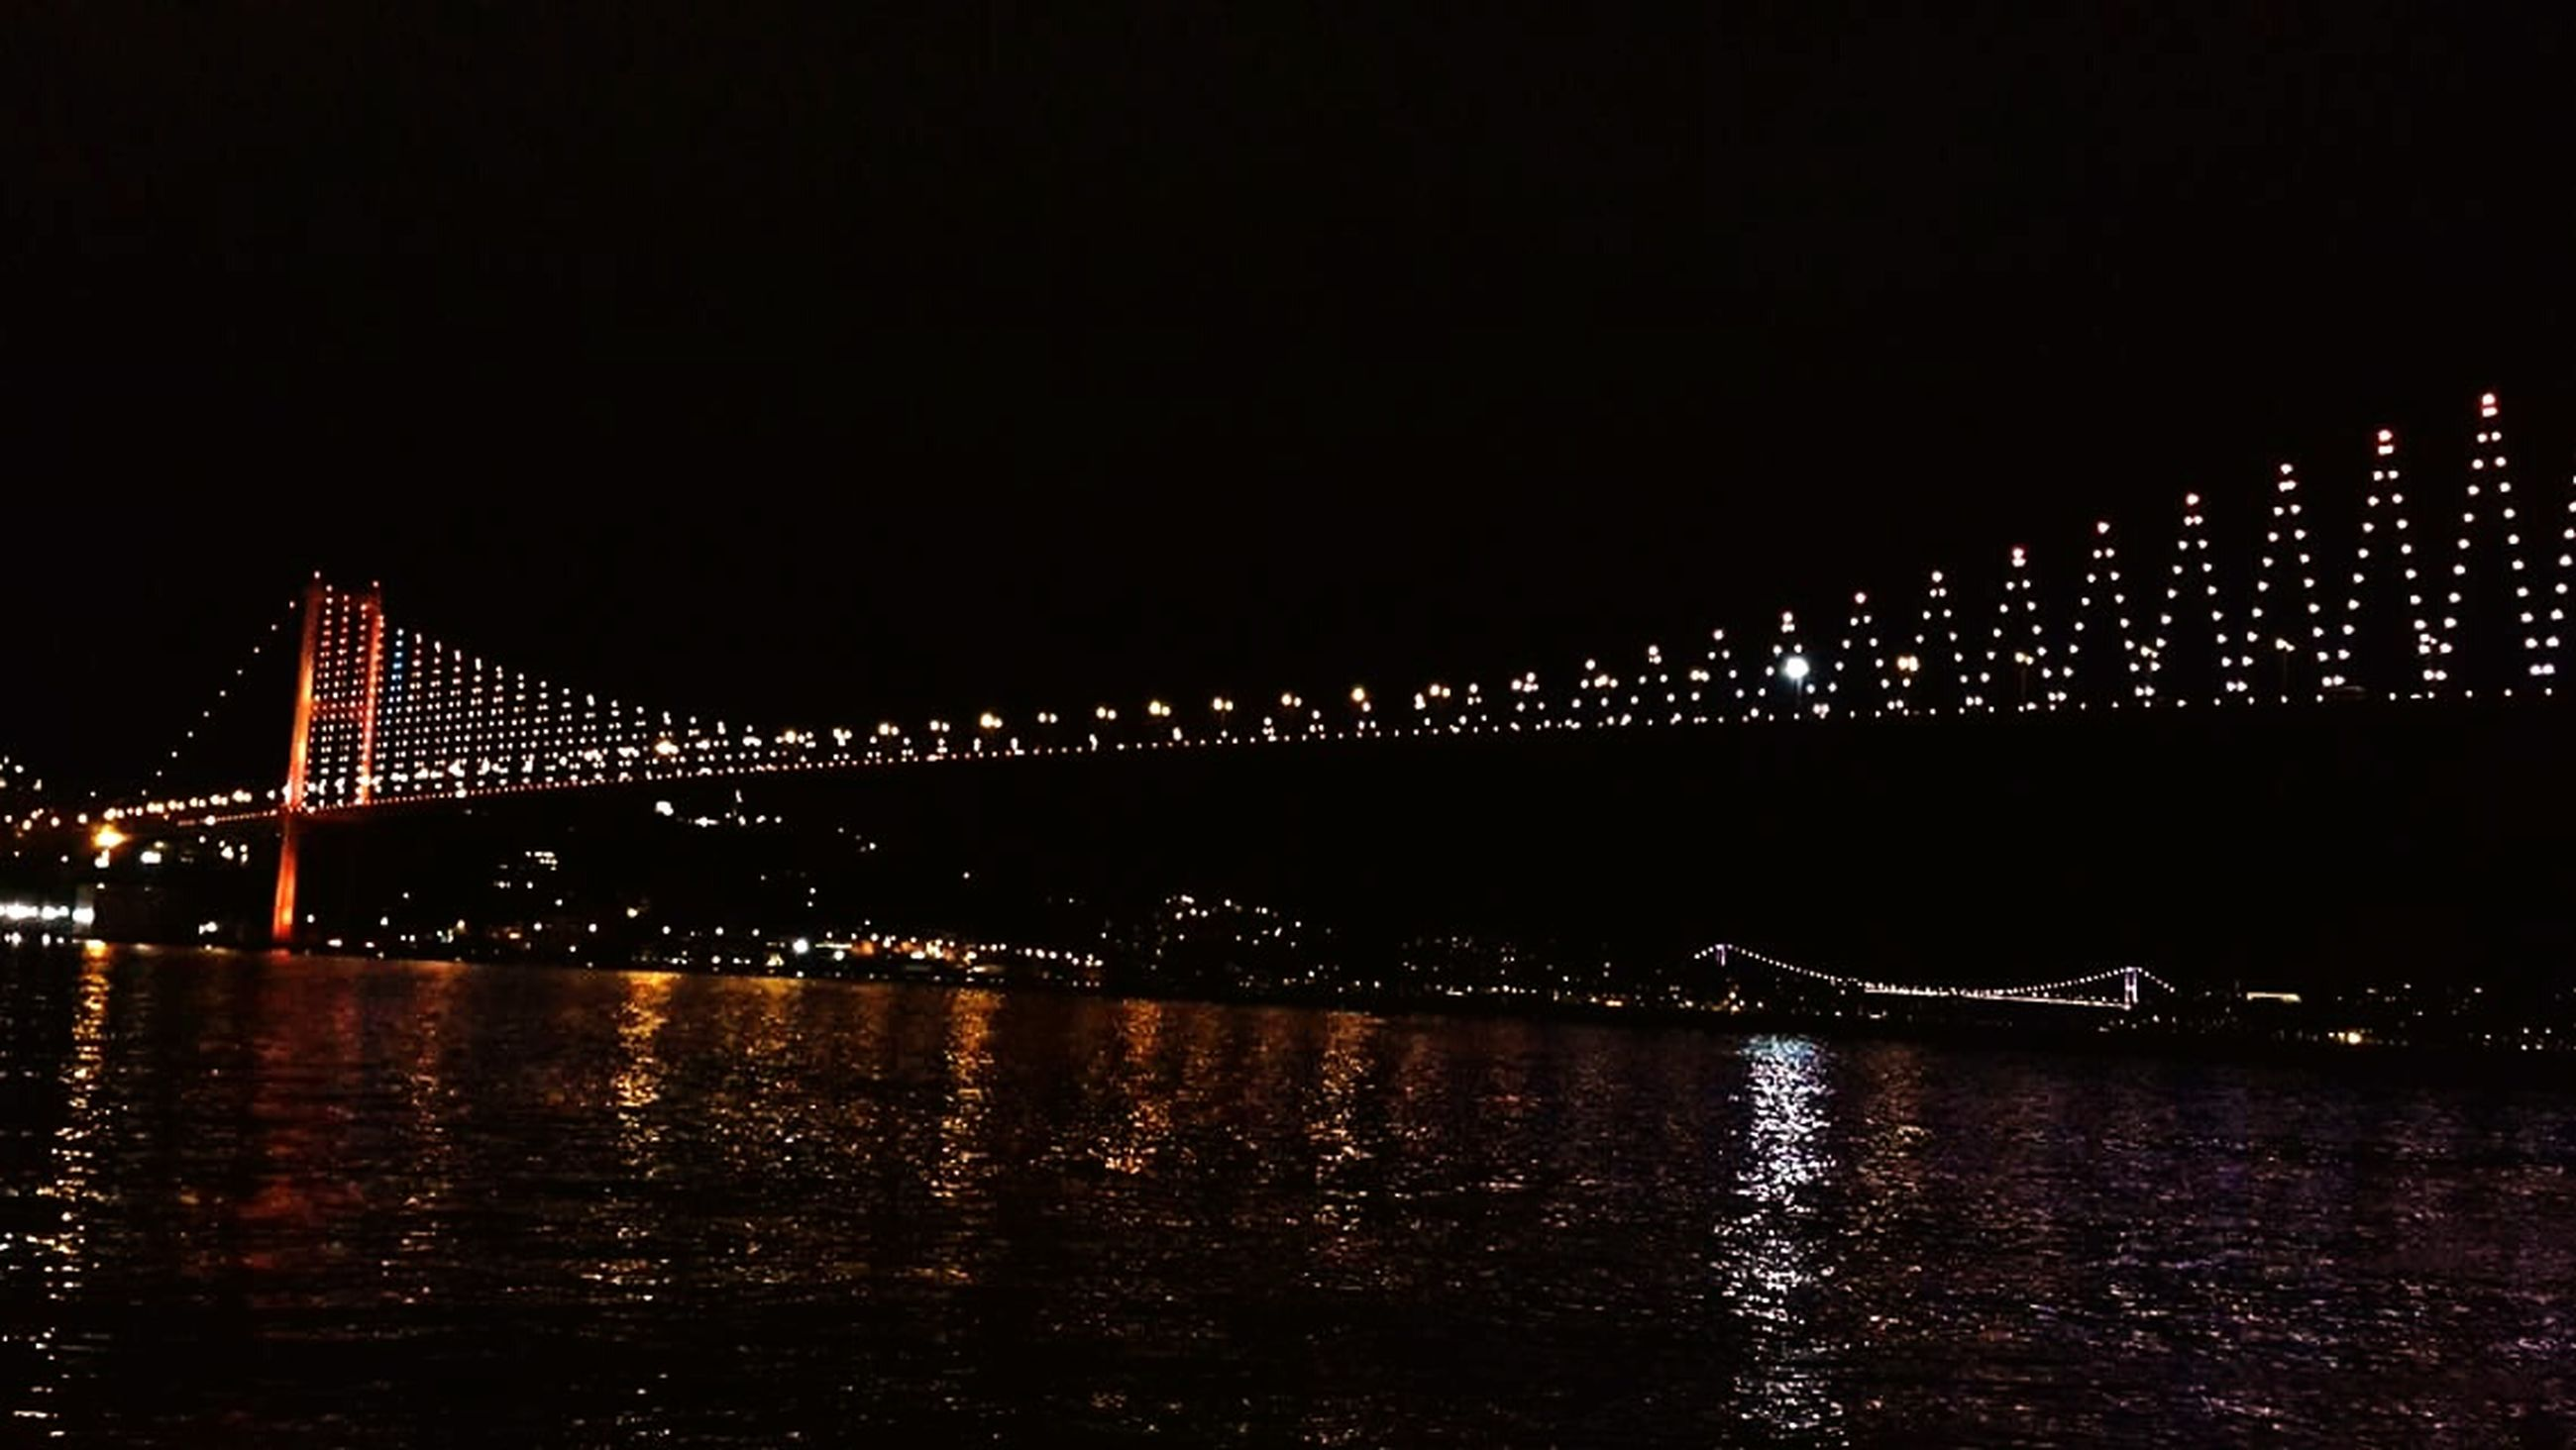 night, illuminated, water, architecture, built structure, waterfront, bridge - man made structure, river, connection, city, reflection, clear sky, copy space, building exterior, bridge, lighting equipment, dark, sea, outdoors, sky